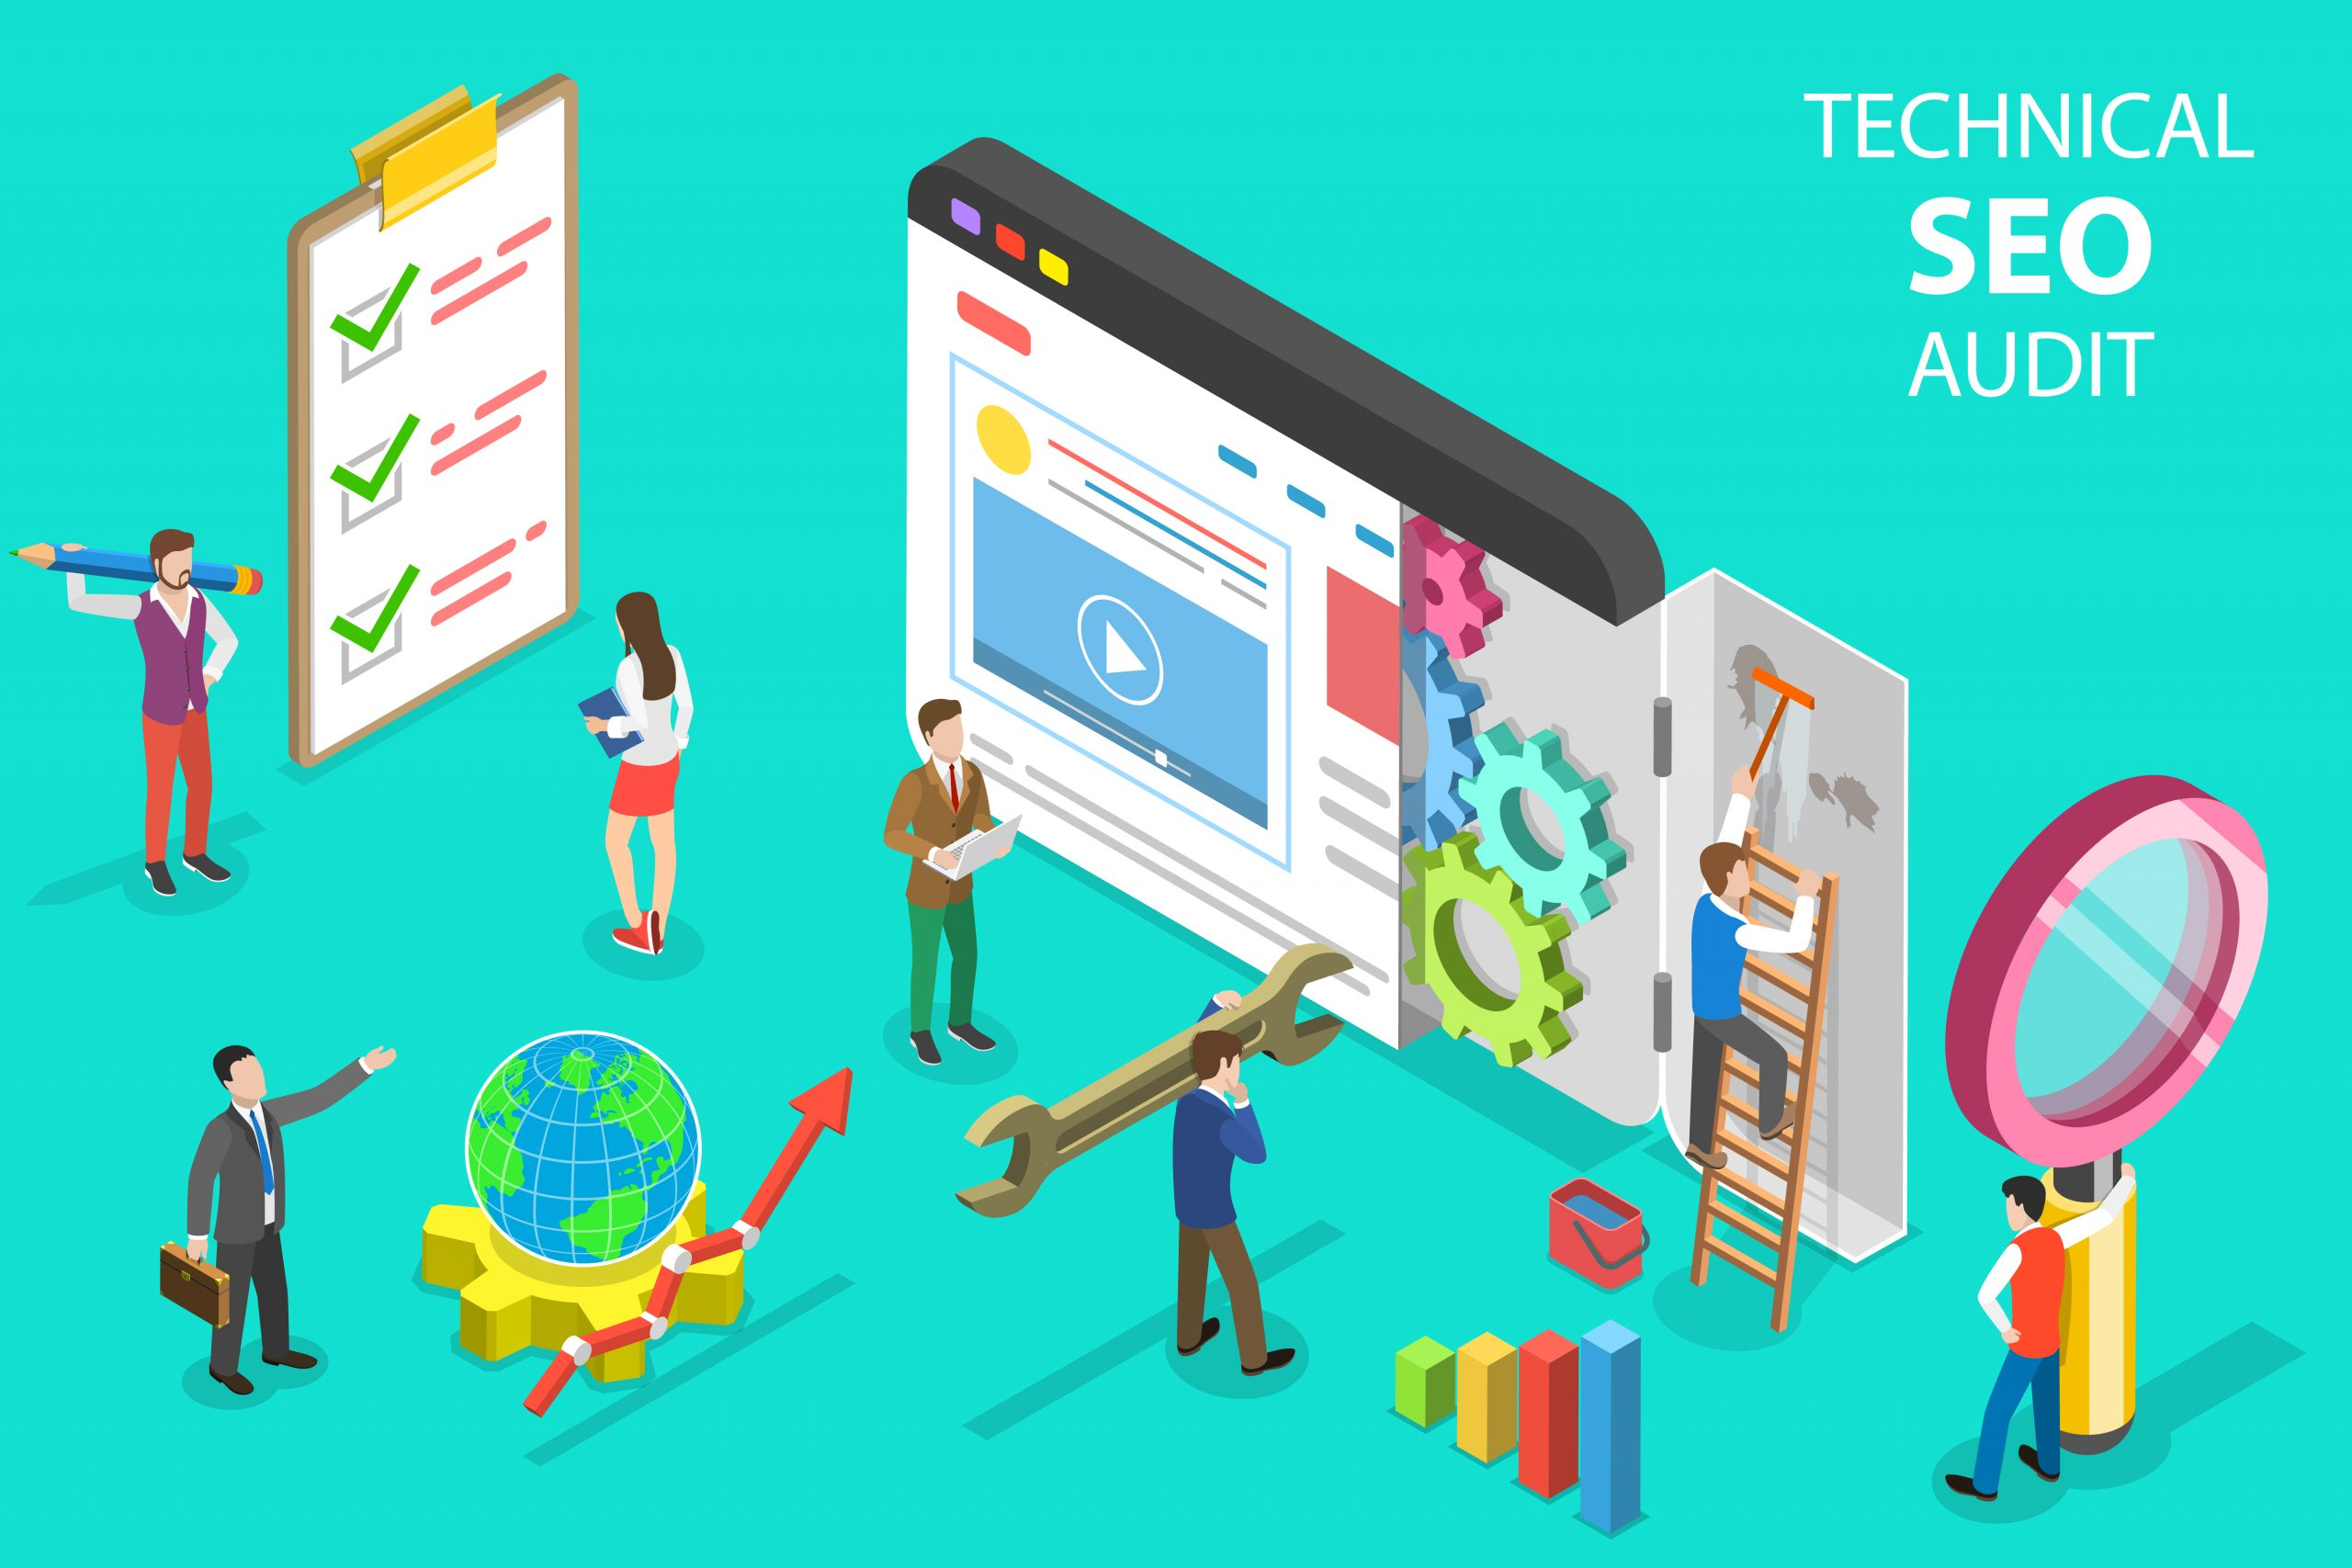 8 Technical SEO Rules to Remember in 2021